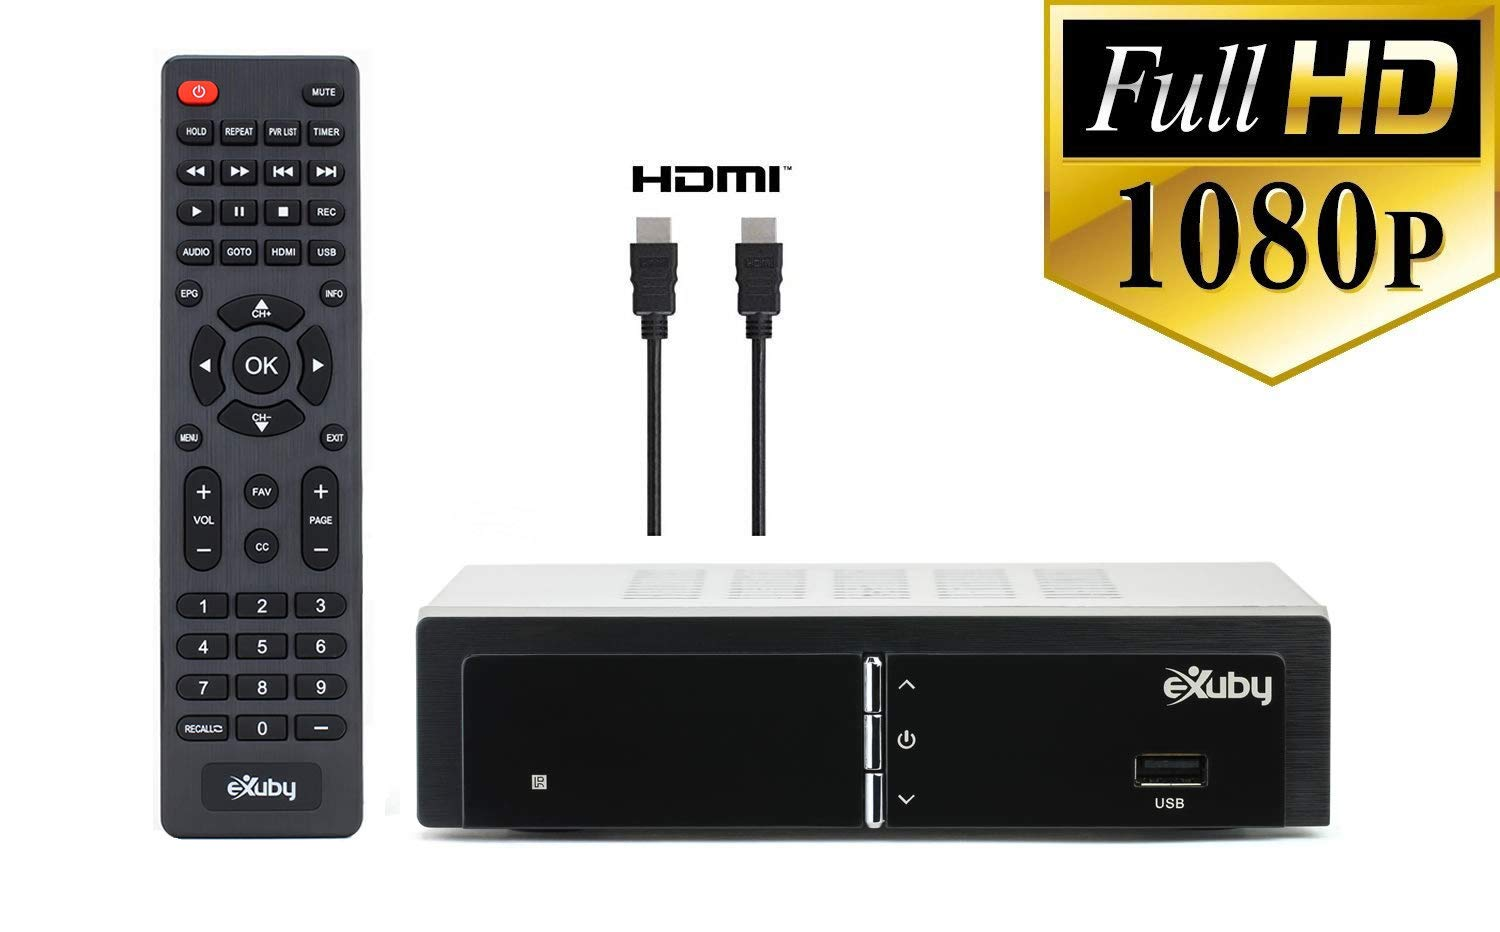 Exuby Digital Converter Box for TV w/ HDMI Cable for Recording and Viewing Full HD Digital Channels (Instant or Scheduled Recording, 1080P HDTV, HDMI Output, 7 Day Program Guide)